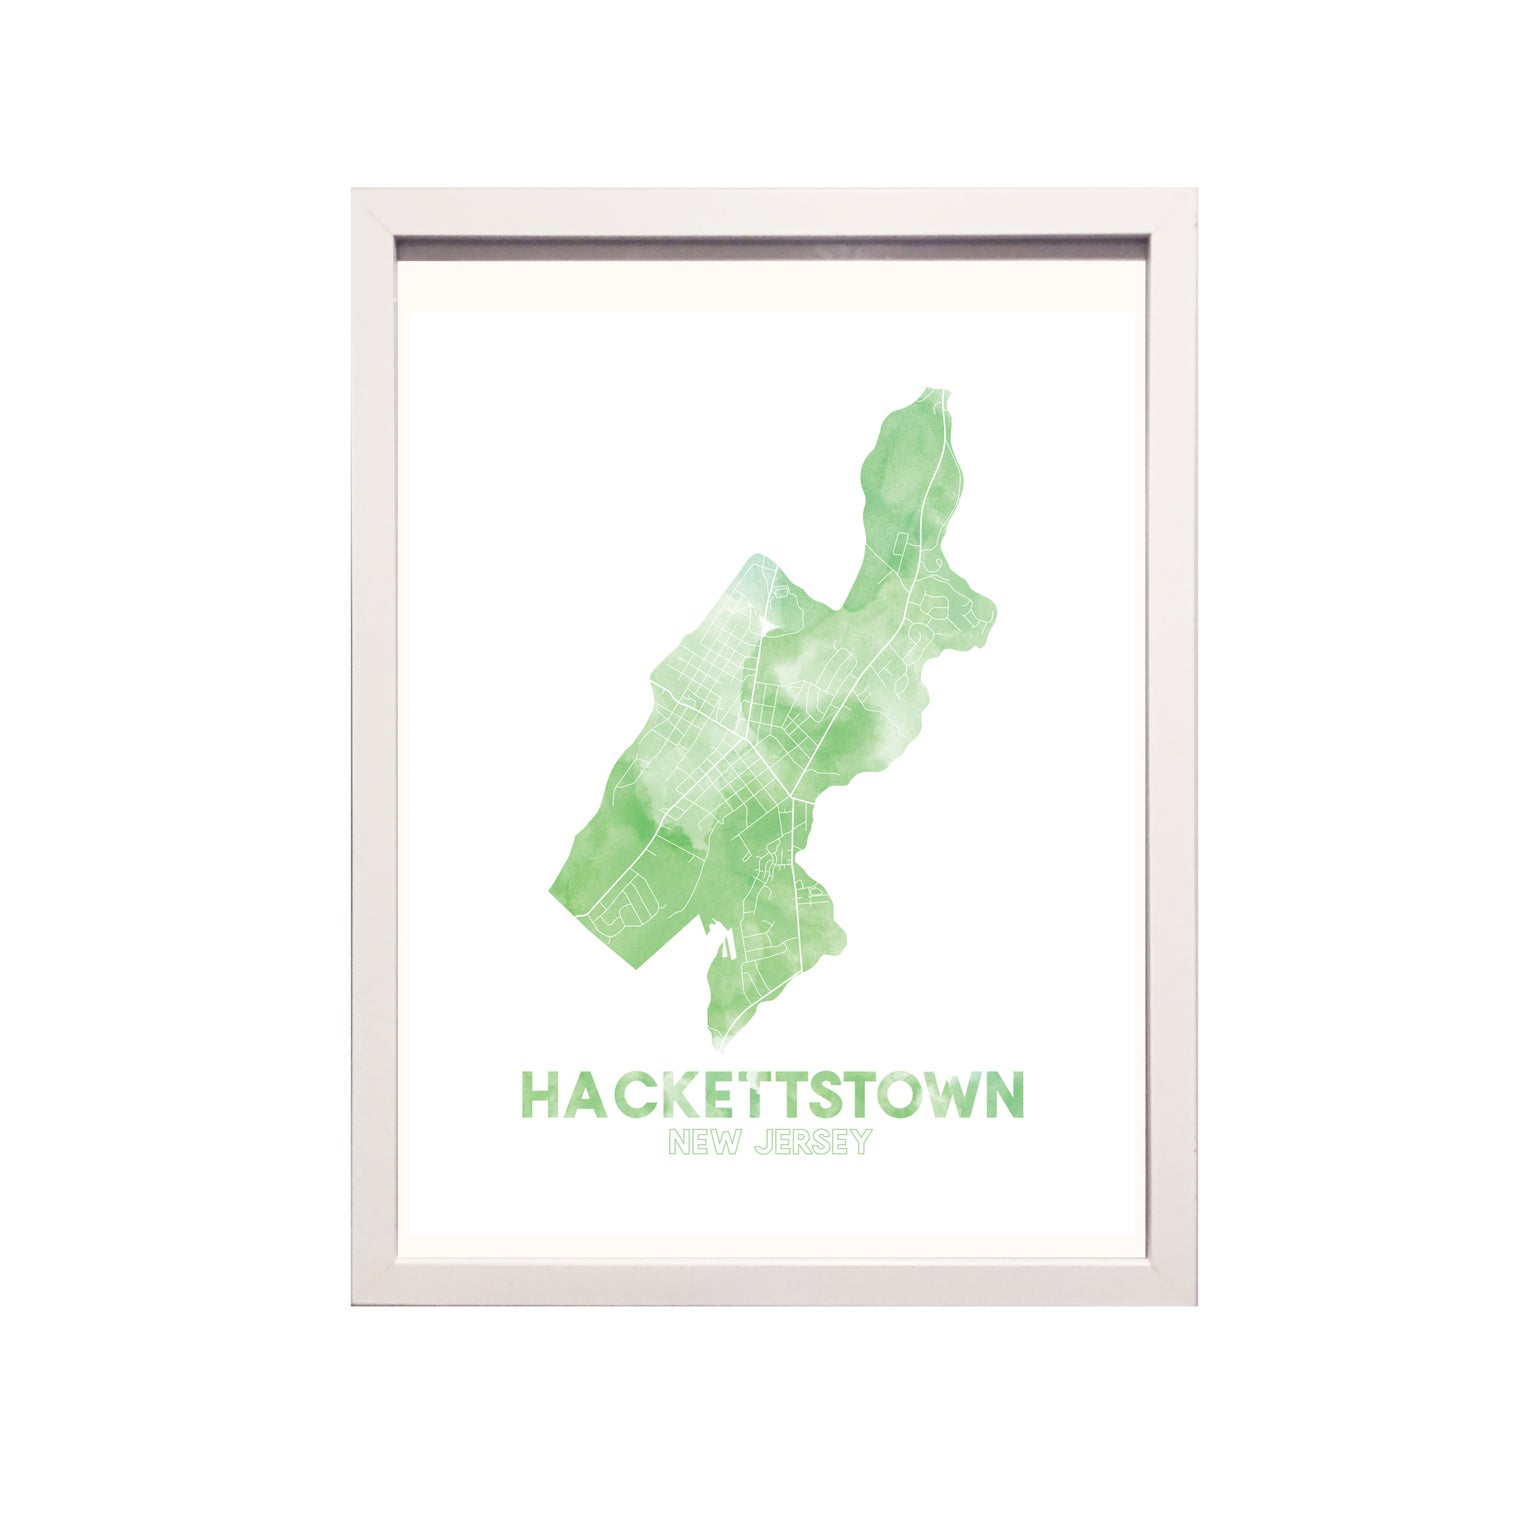 Image of Hackettstown NJ Art print